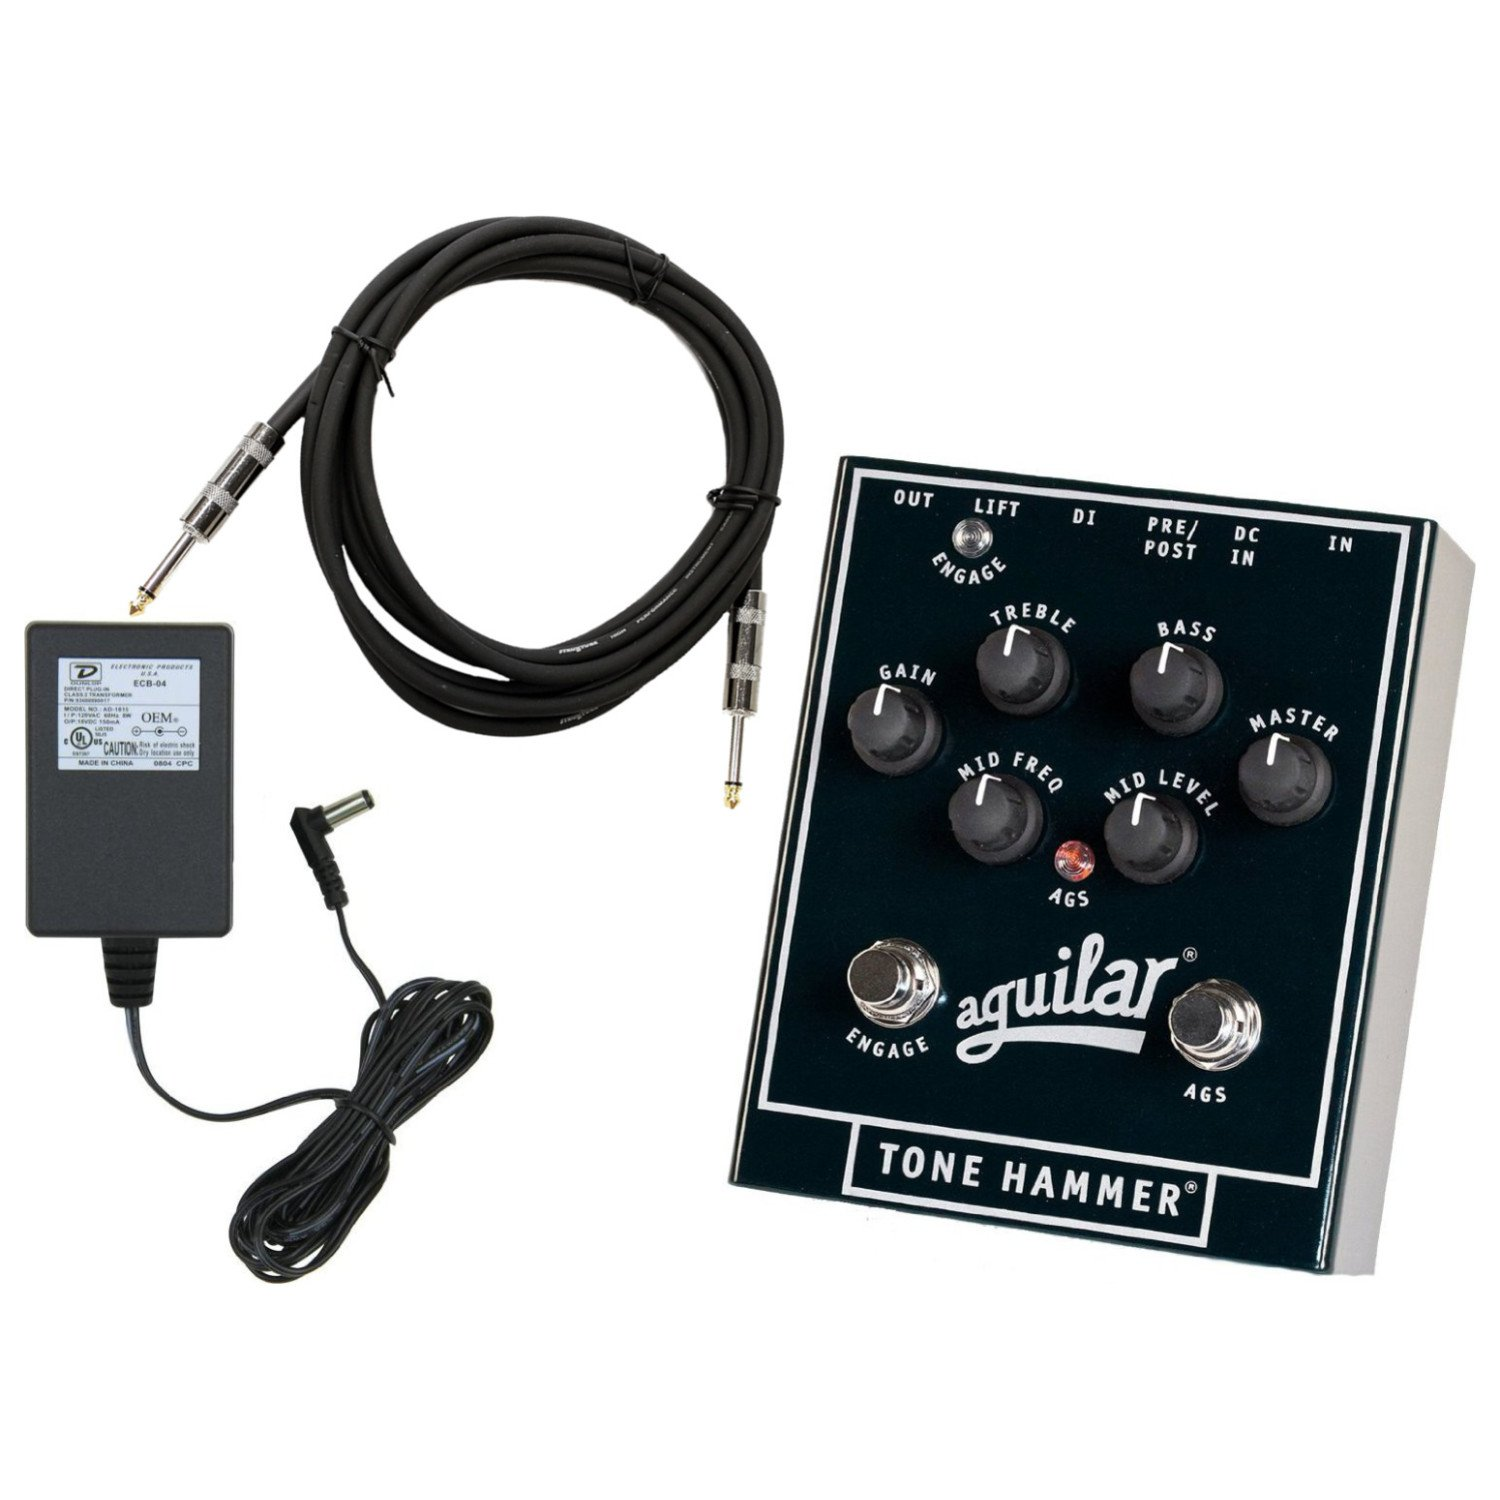 Aguilar Tone Hammer Bass Preamp Direct Box Effect Pedal with Overdrive and 3 Band EQ with 18V Power Adapter and Instrument Cable by Aguilar